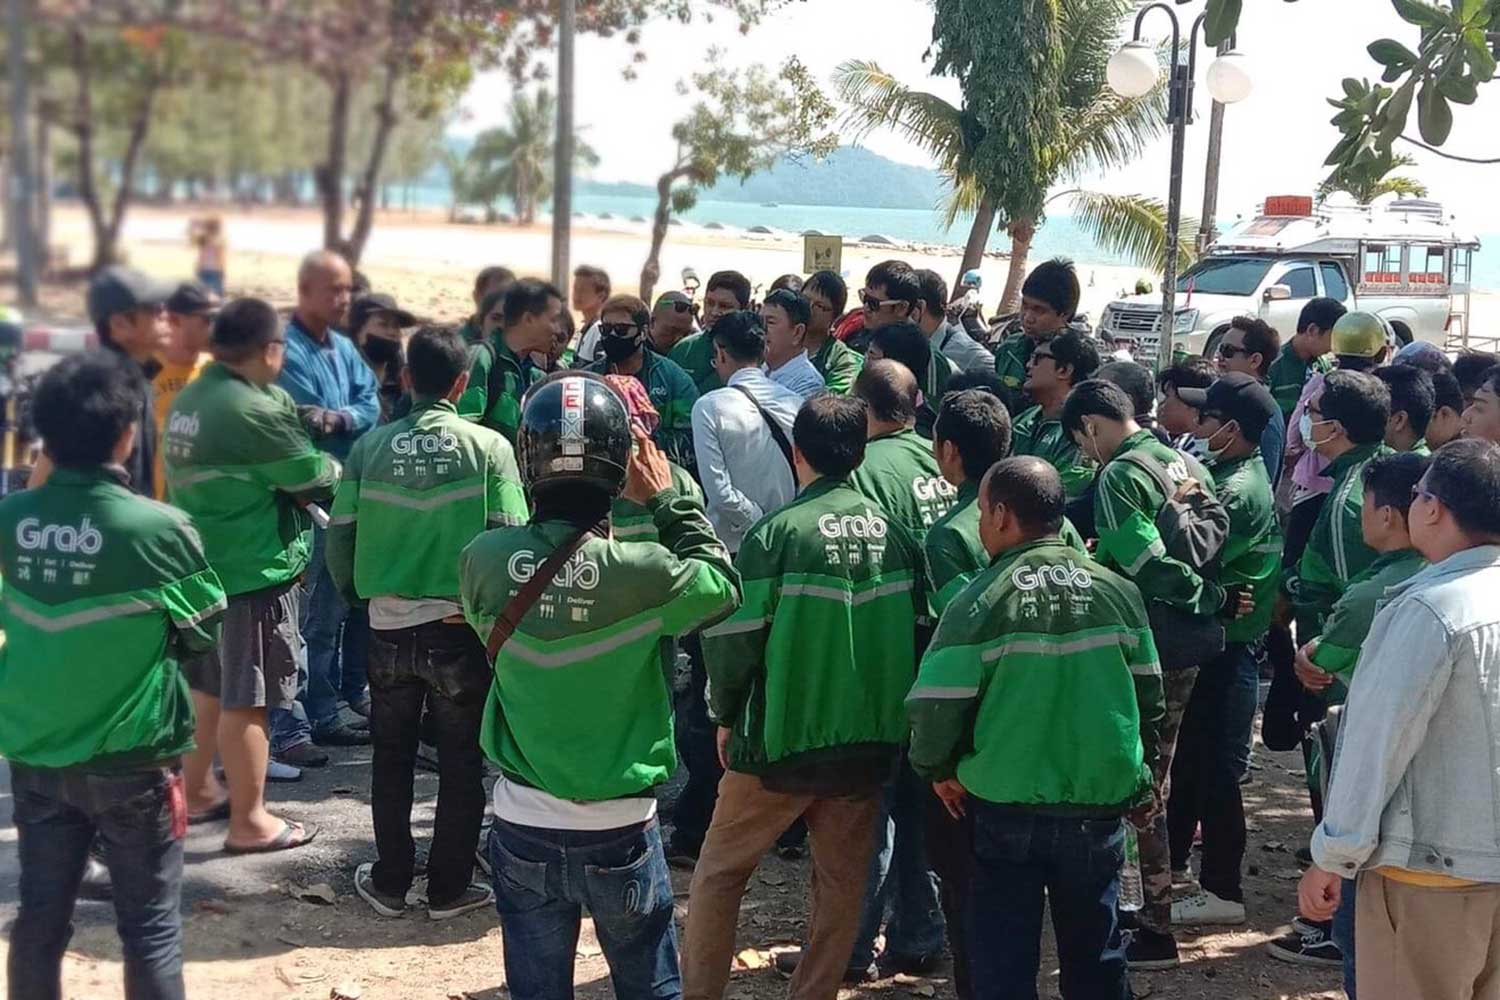 About 100 riders of app-based GrabFood food delivery service gather at Suphan Hin in Muang district of Phuket to demand a 10-baht increase in the delivery fee from the service operator. (Photo by Achadtaya Chuenniran)